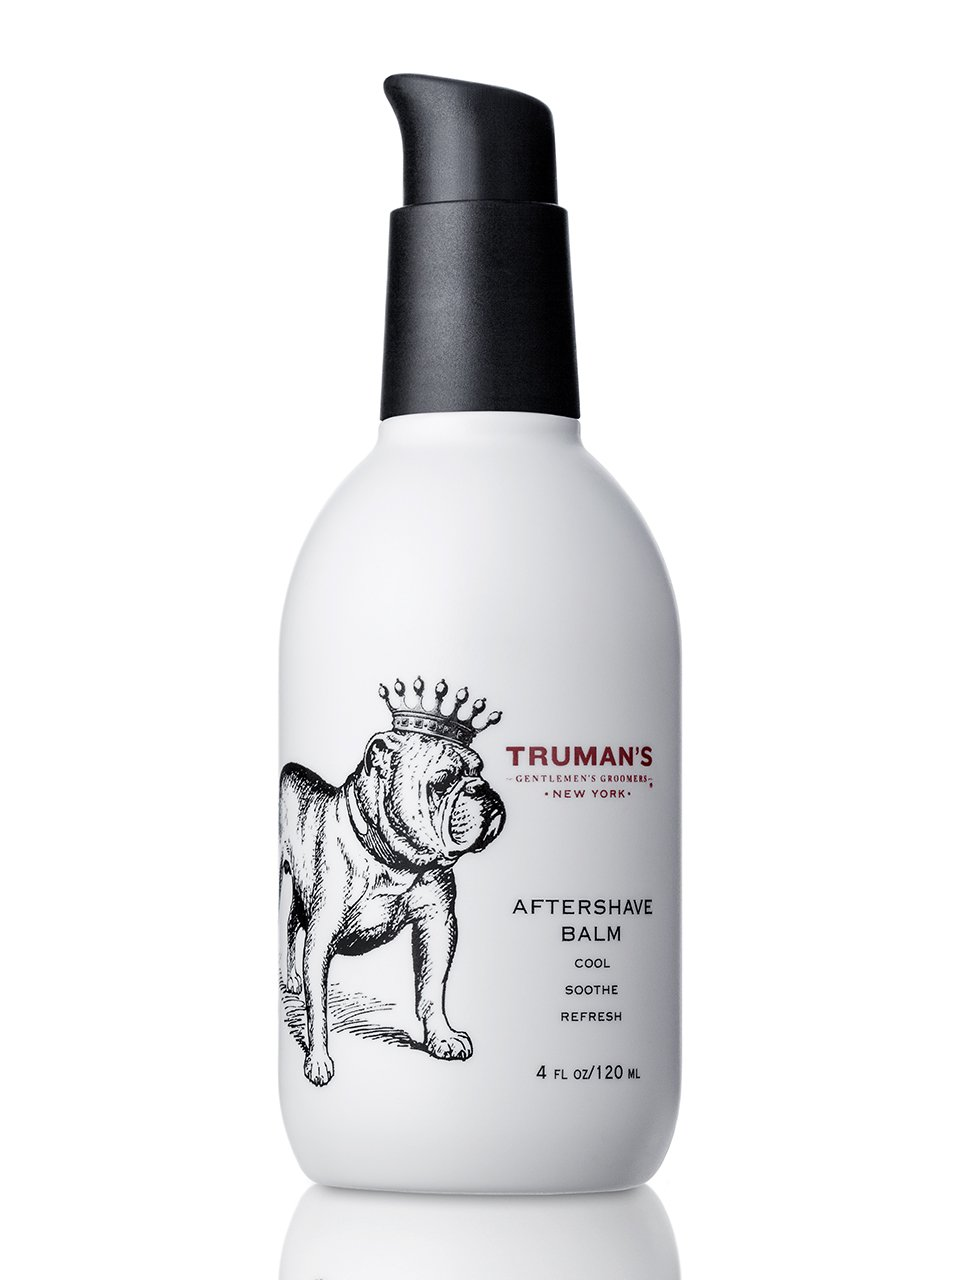 Truman's Aftershave Balm